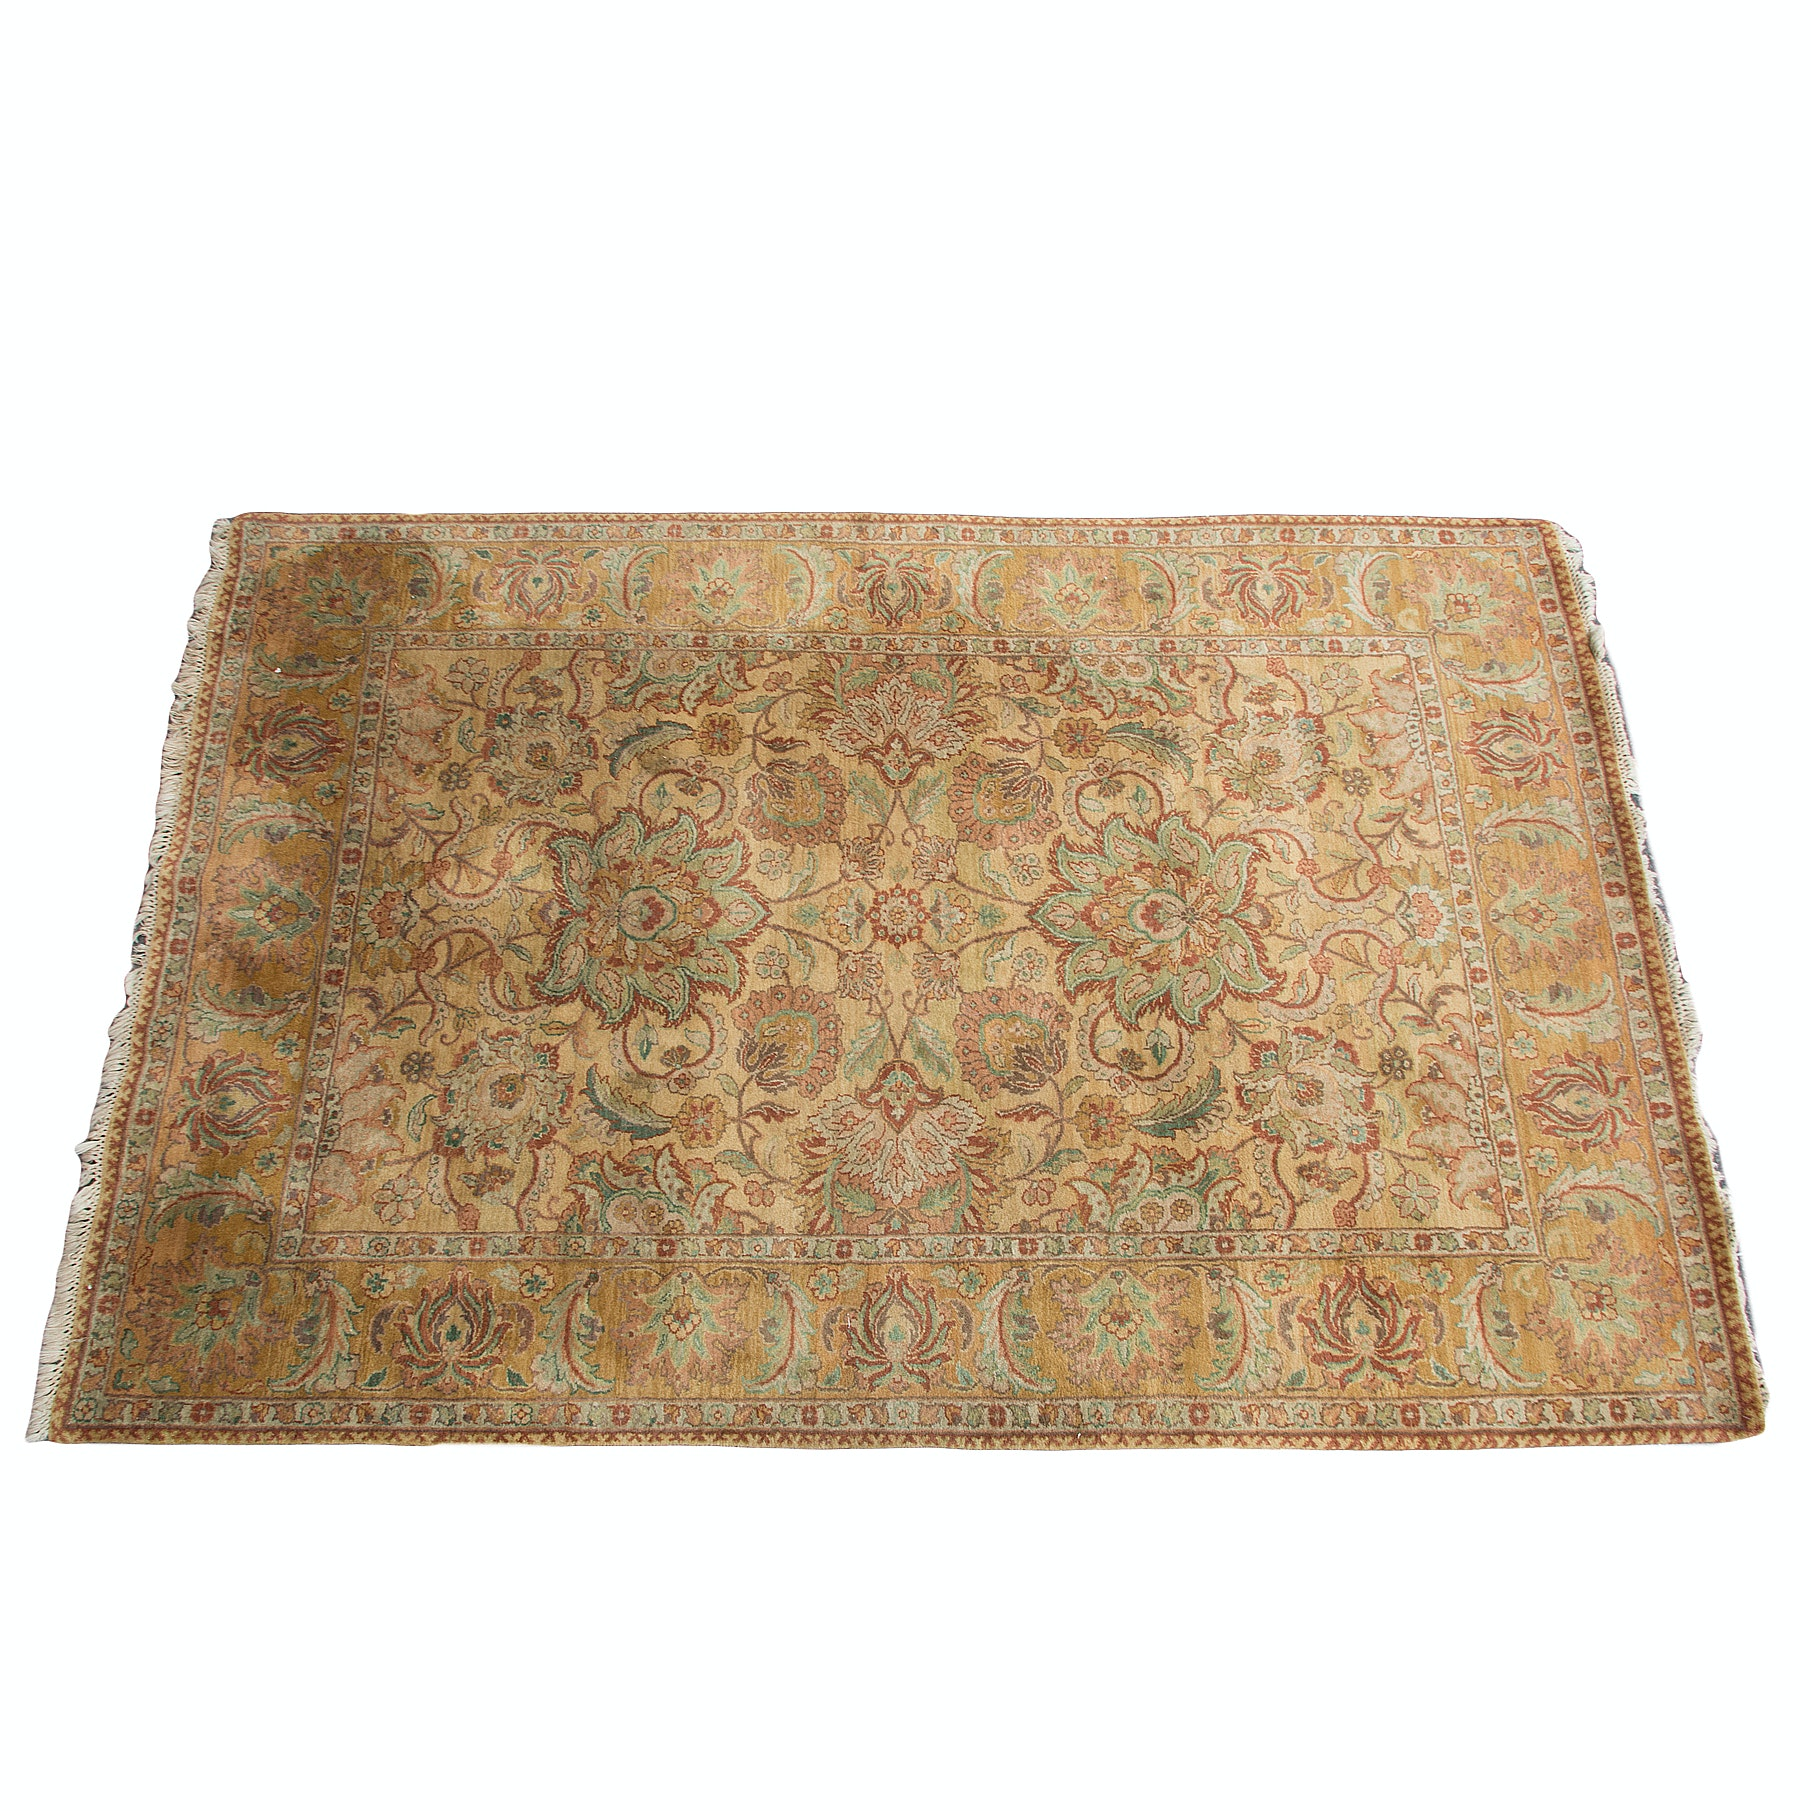 Hand-Knotted Persian-Style Palmette Area Rug